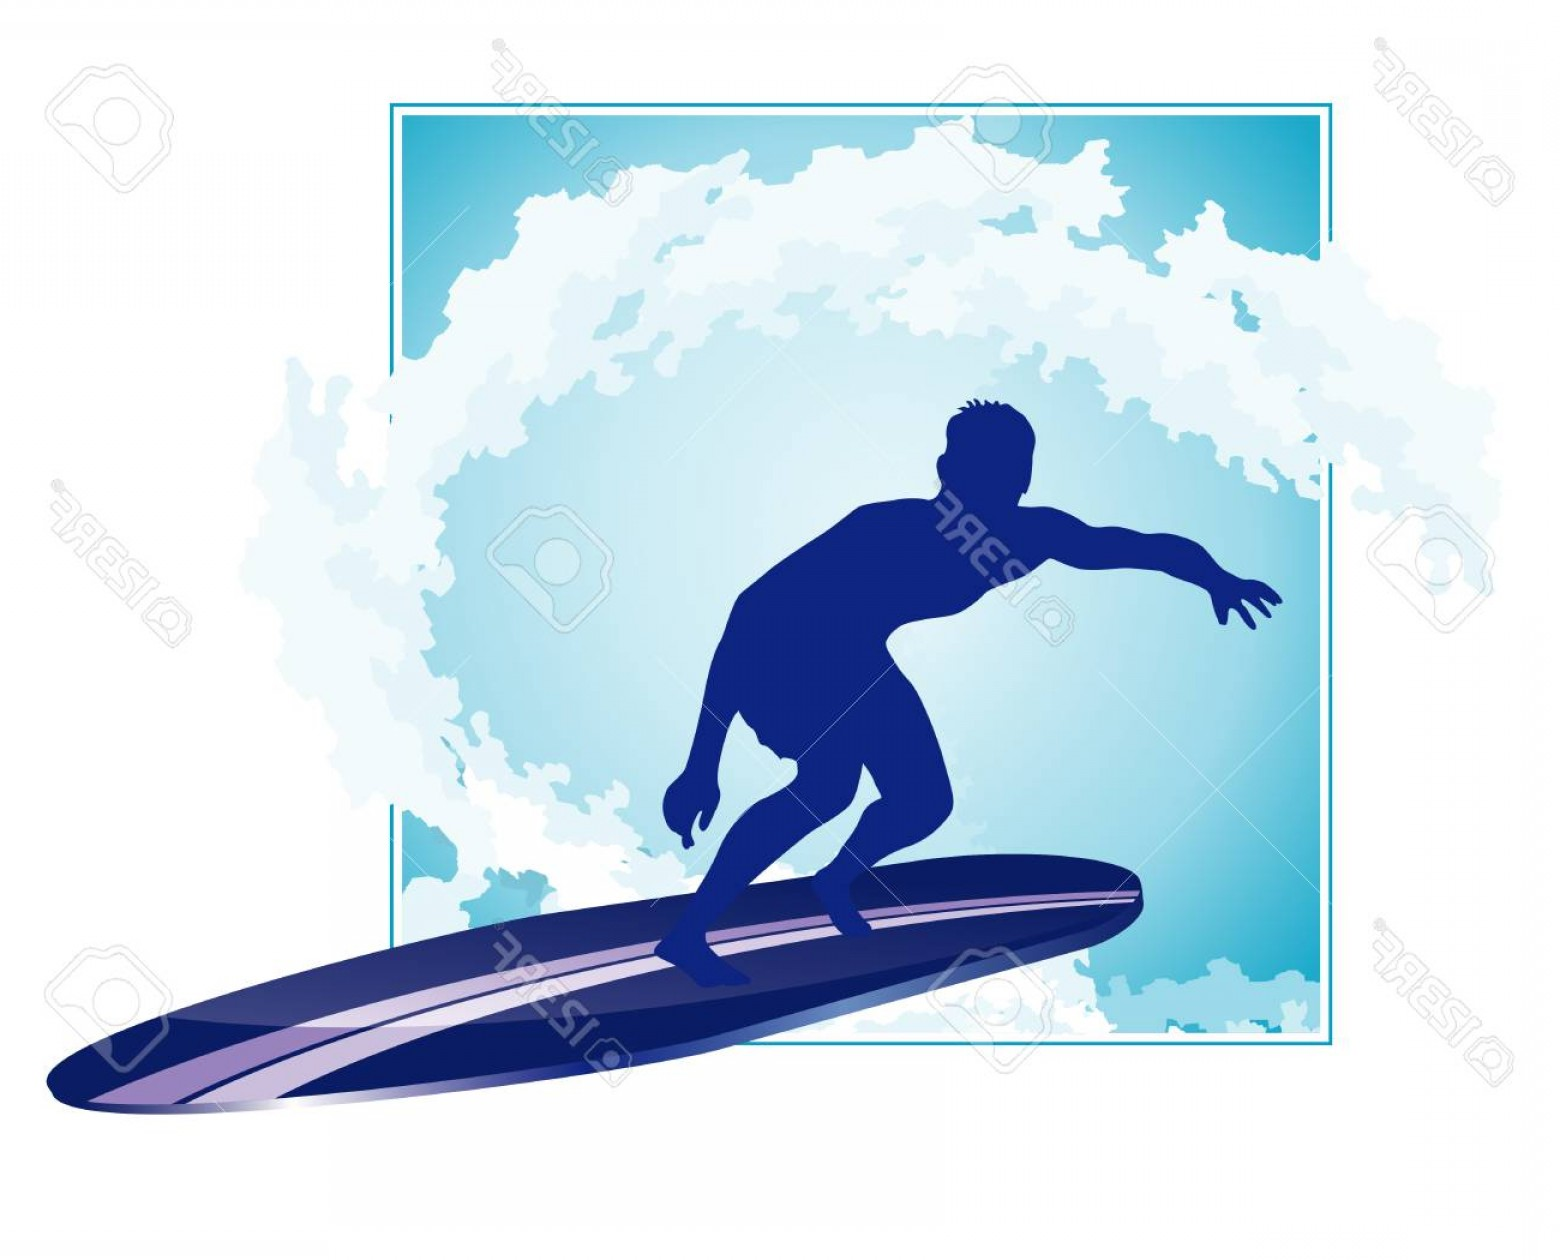 Waves With Surfer Silhouette Vector: Photostock Vector Surfer Silhouette With Abstract Wave Background